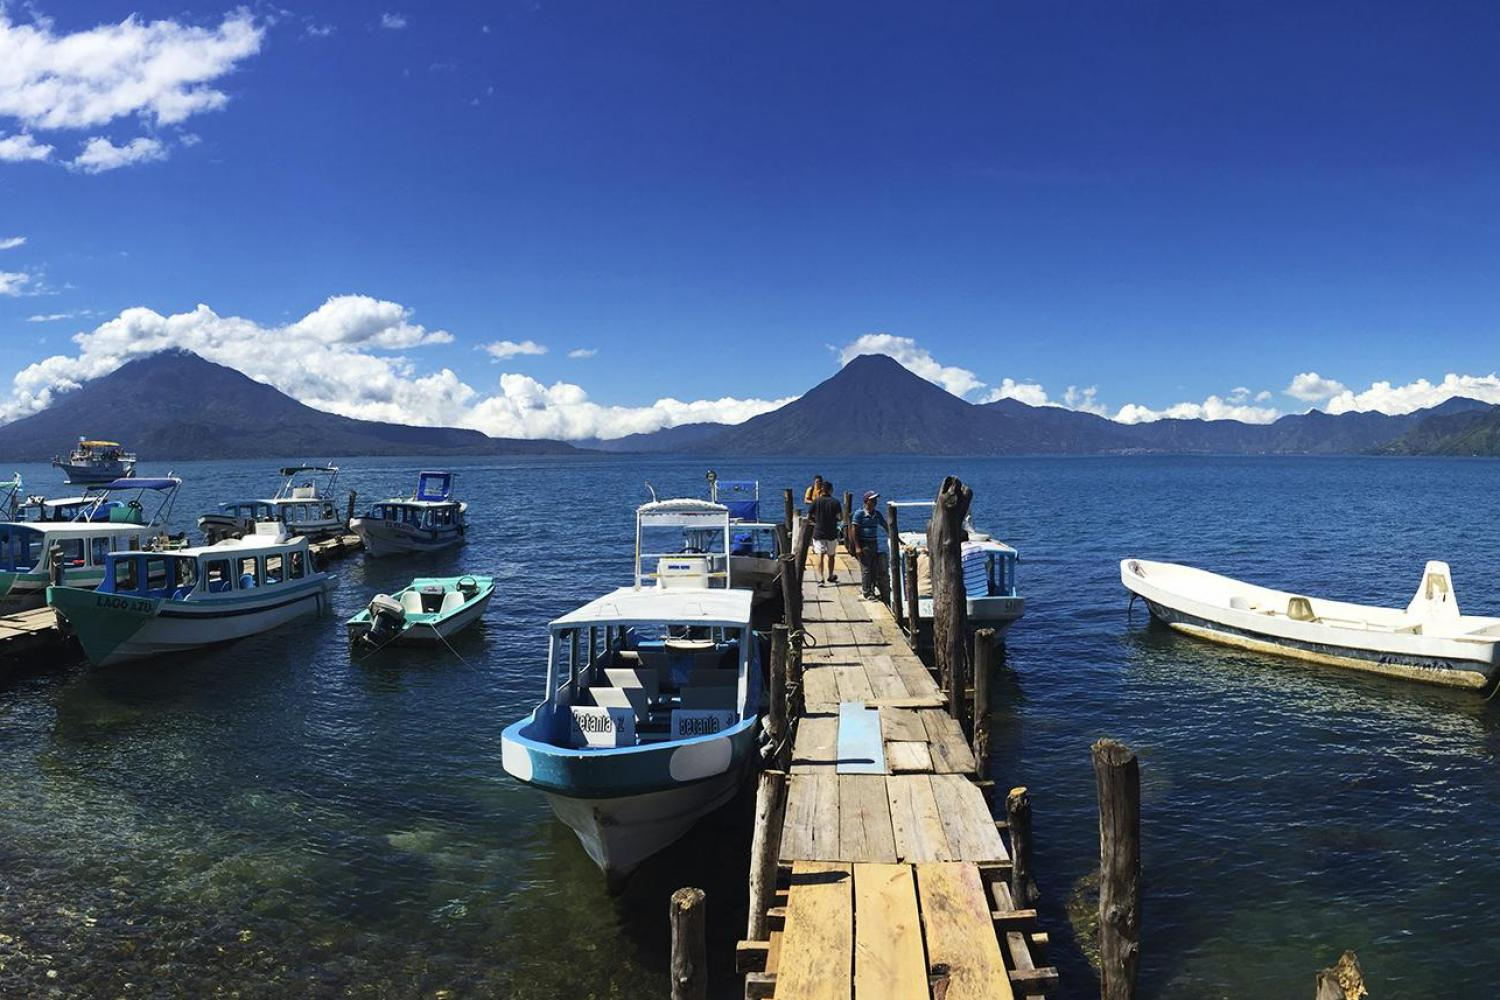 Lake Atitlan Tour with Boat to Santiago Full Day from Guatemala City